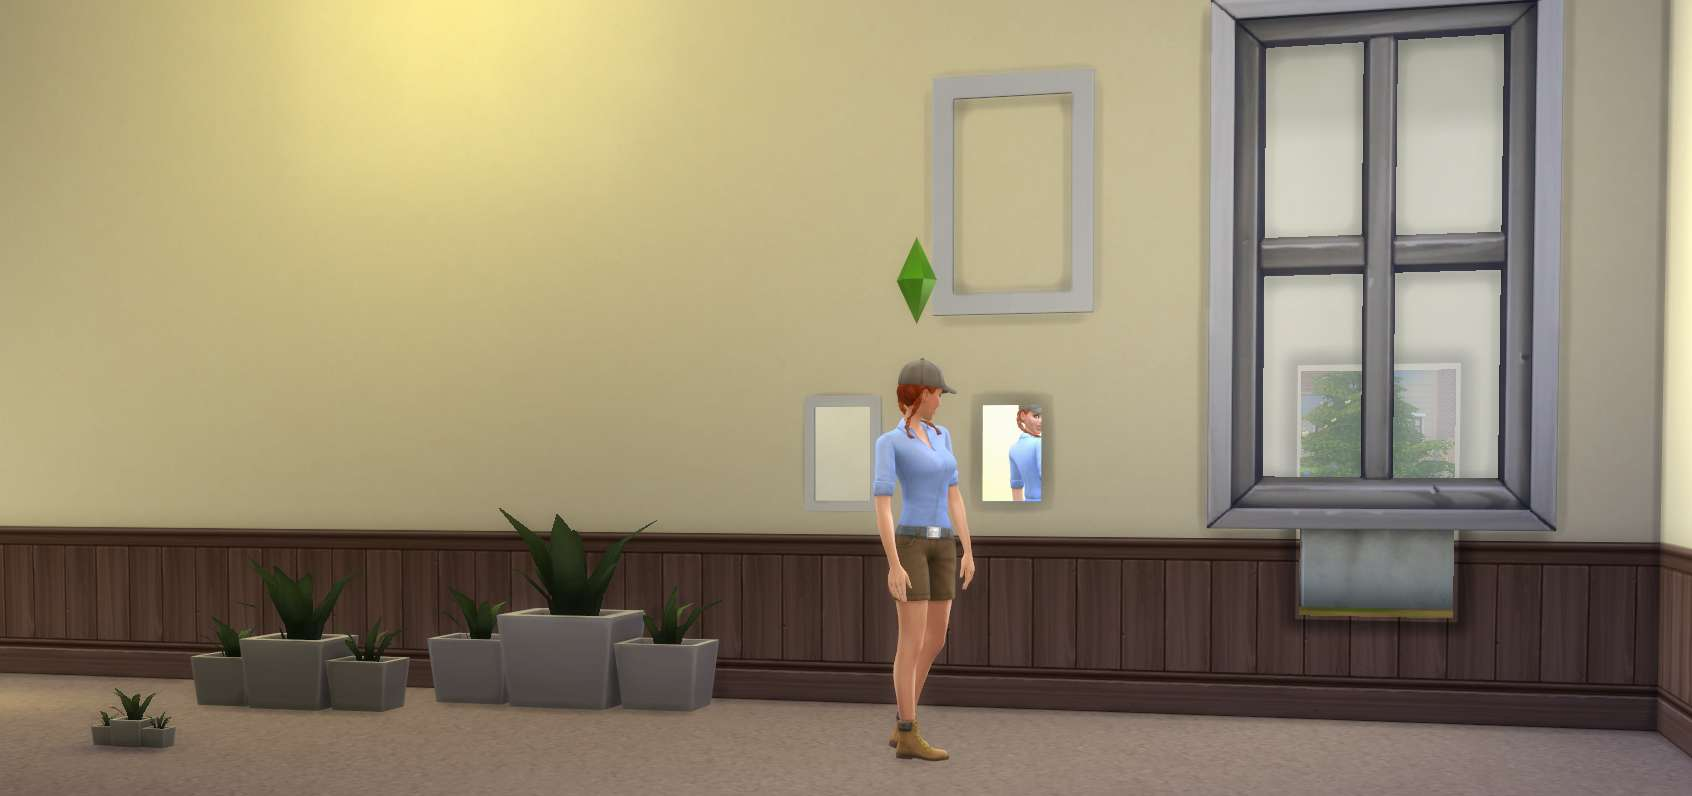 The Sims 4 Building: Using Build Mode Cheats